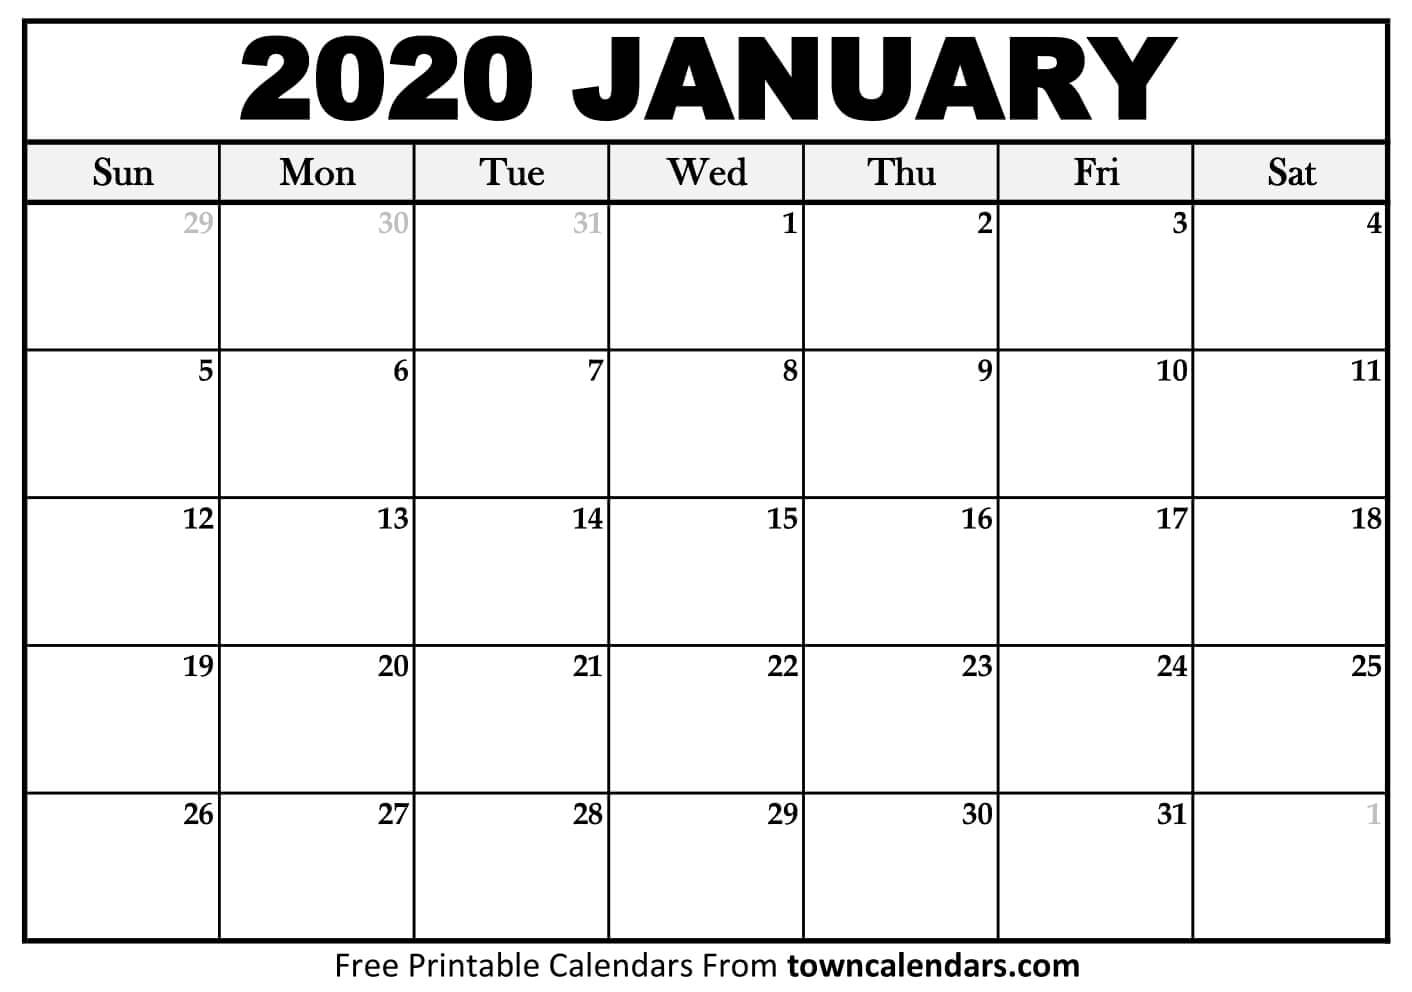 Printable January 2020 Calendar  Towncalendars within Printable January 2020 Calendar